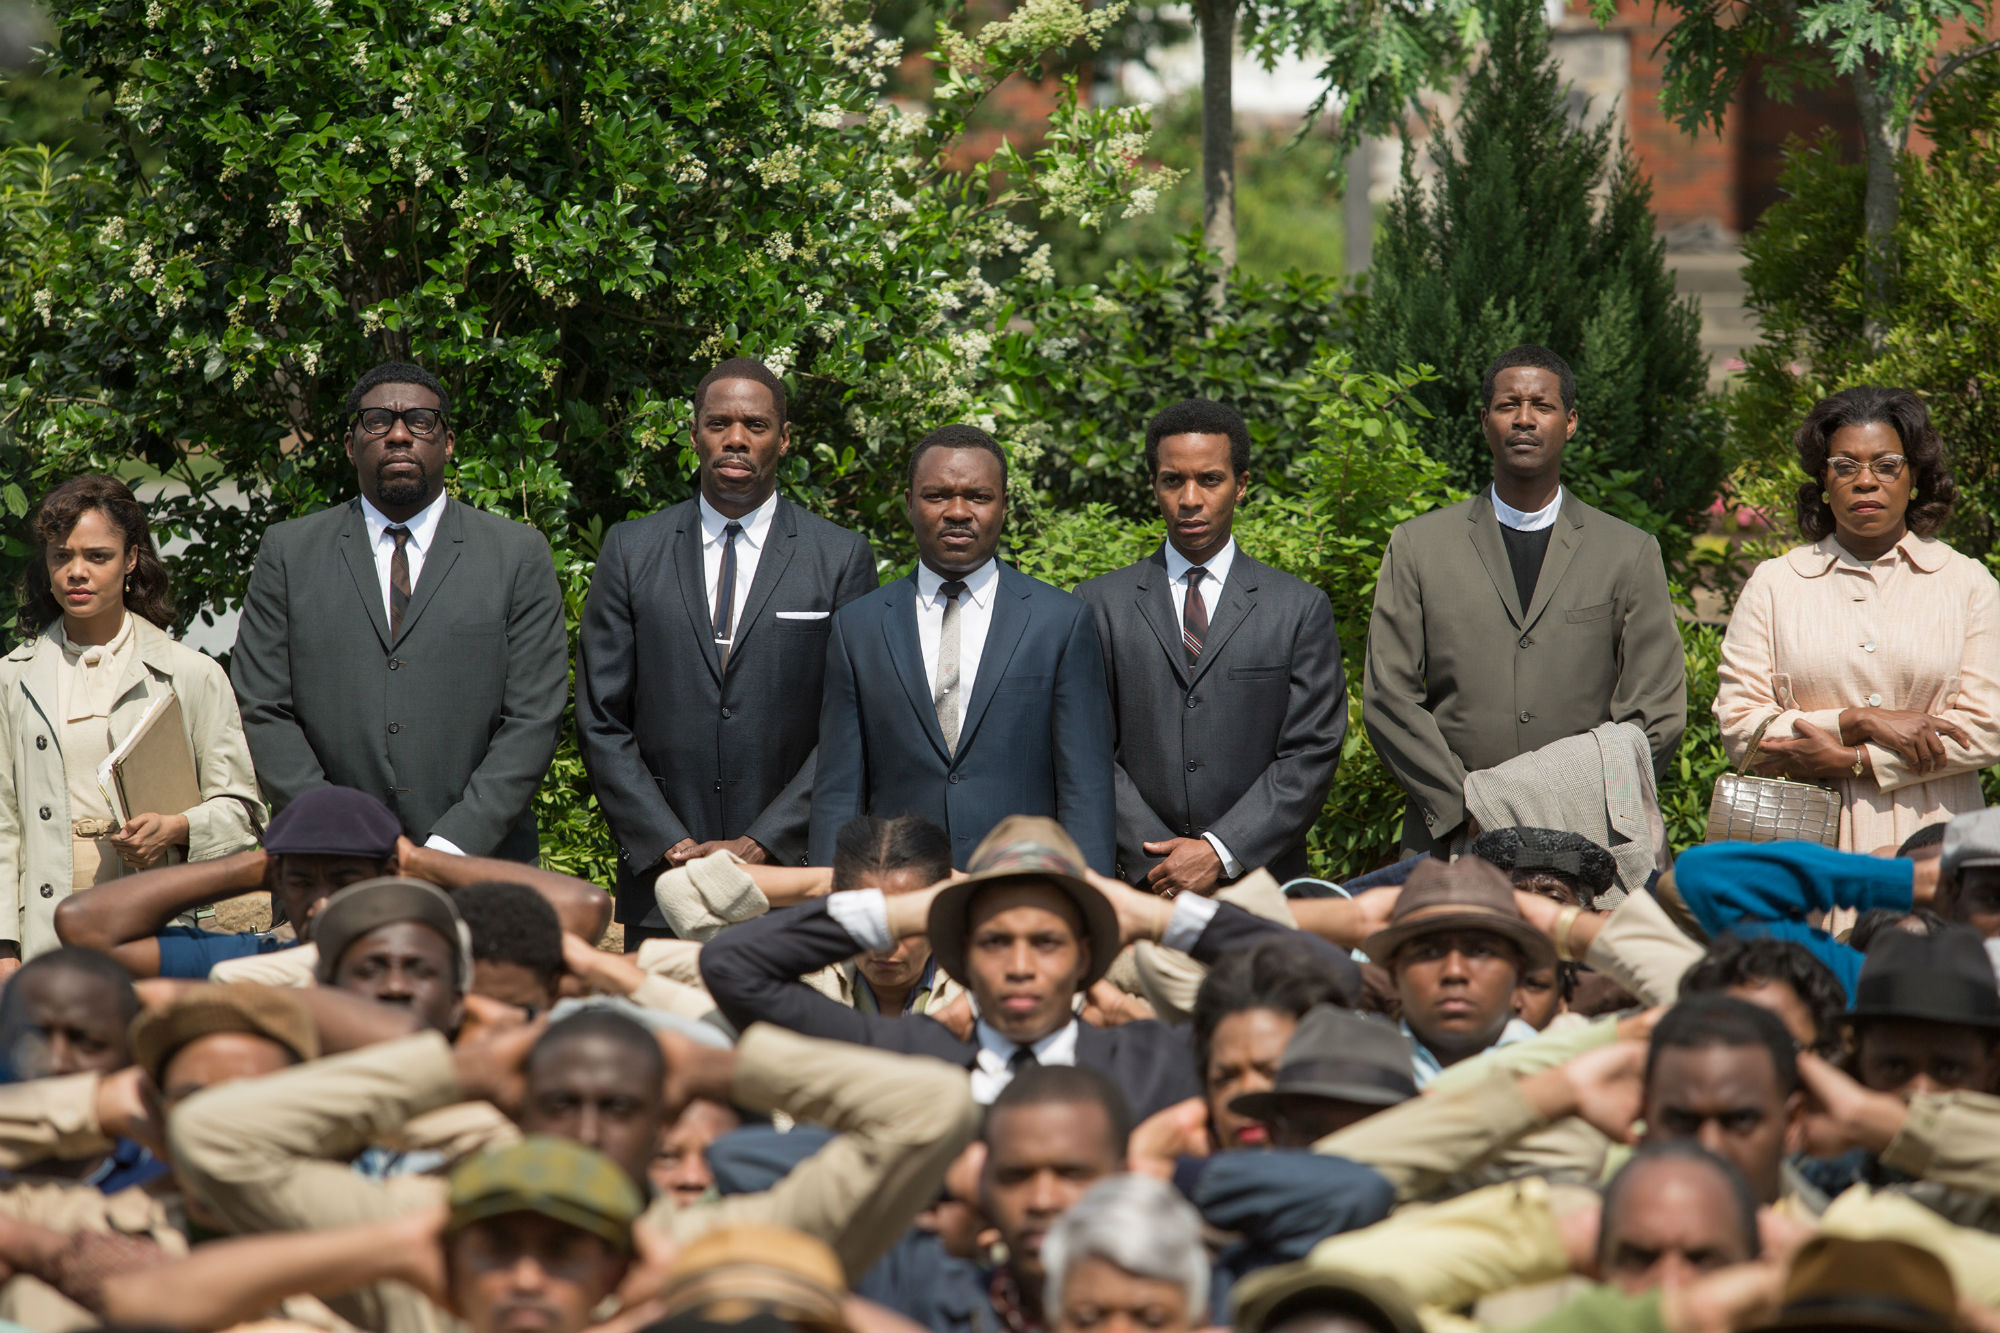 Selma-cast-2014-film-oscar-academy-awards